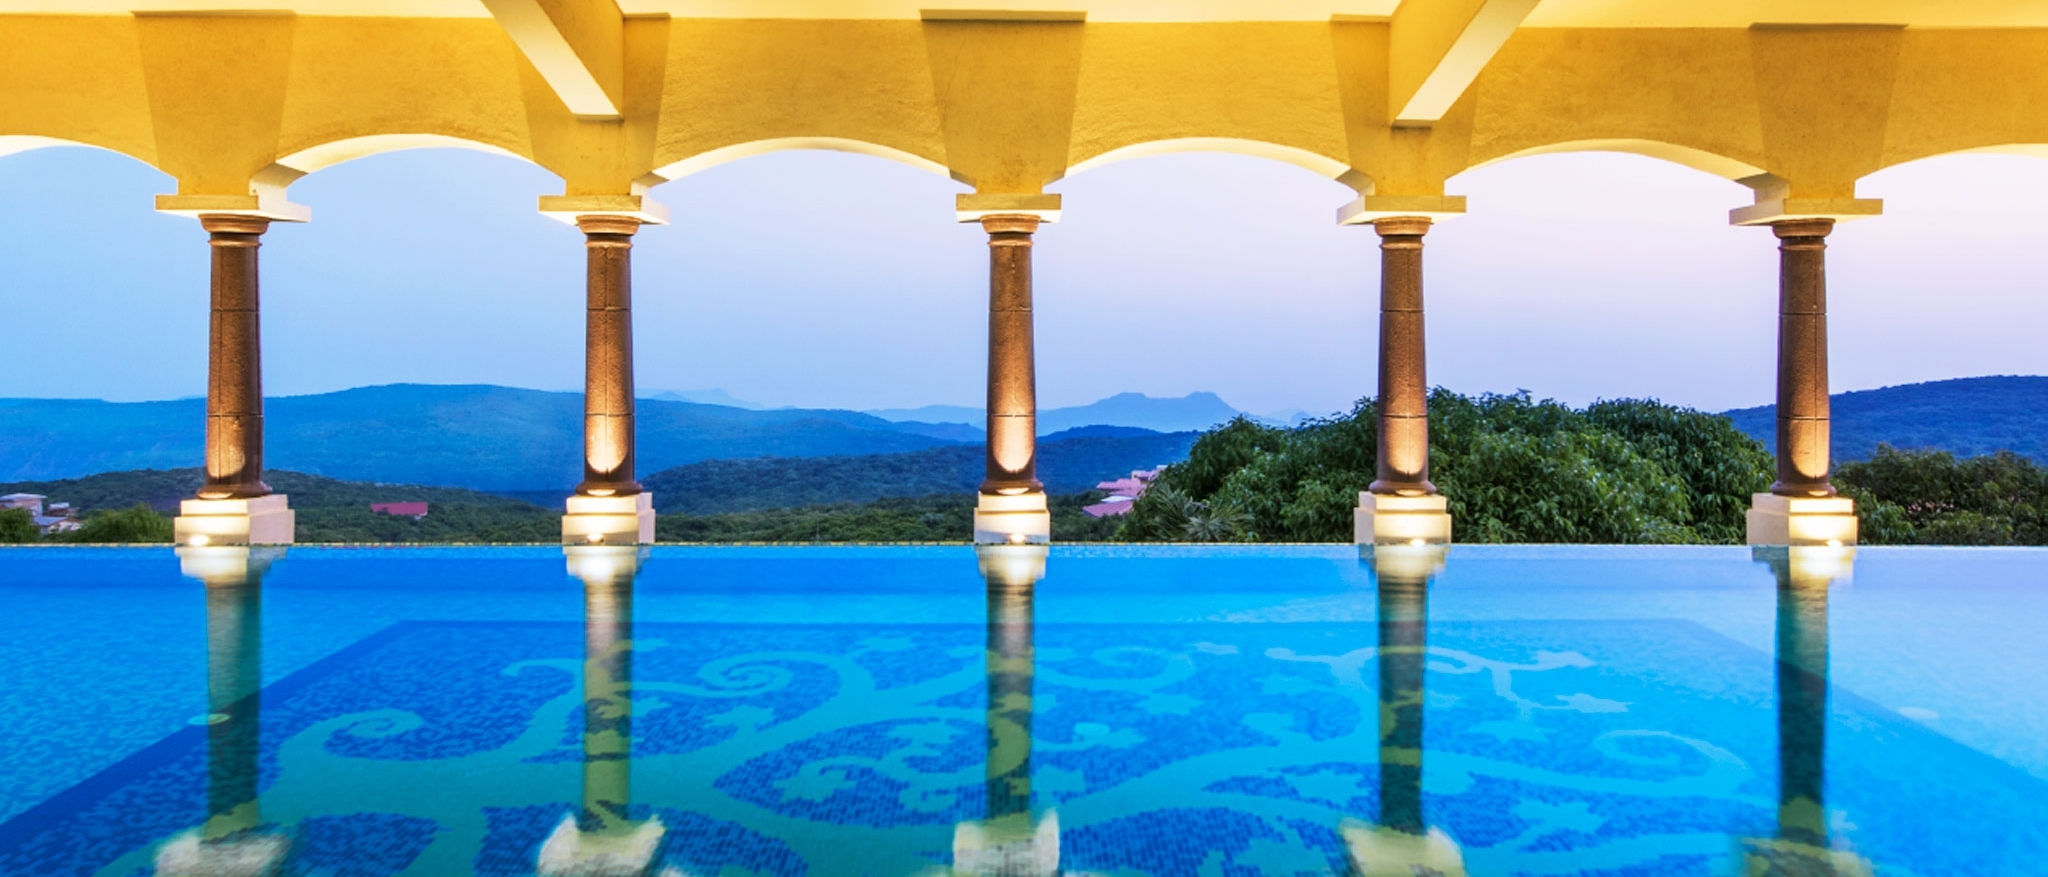 Le Méridien Mahabaleshwar Resort & Spa : Infinity Pool